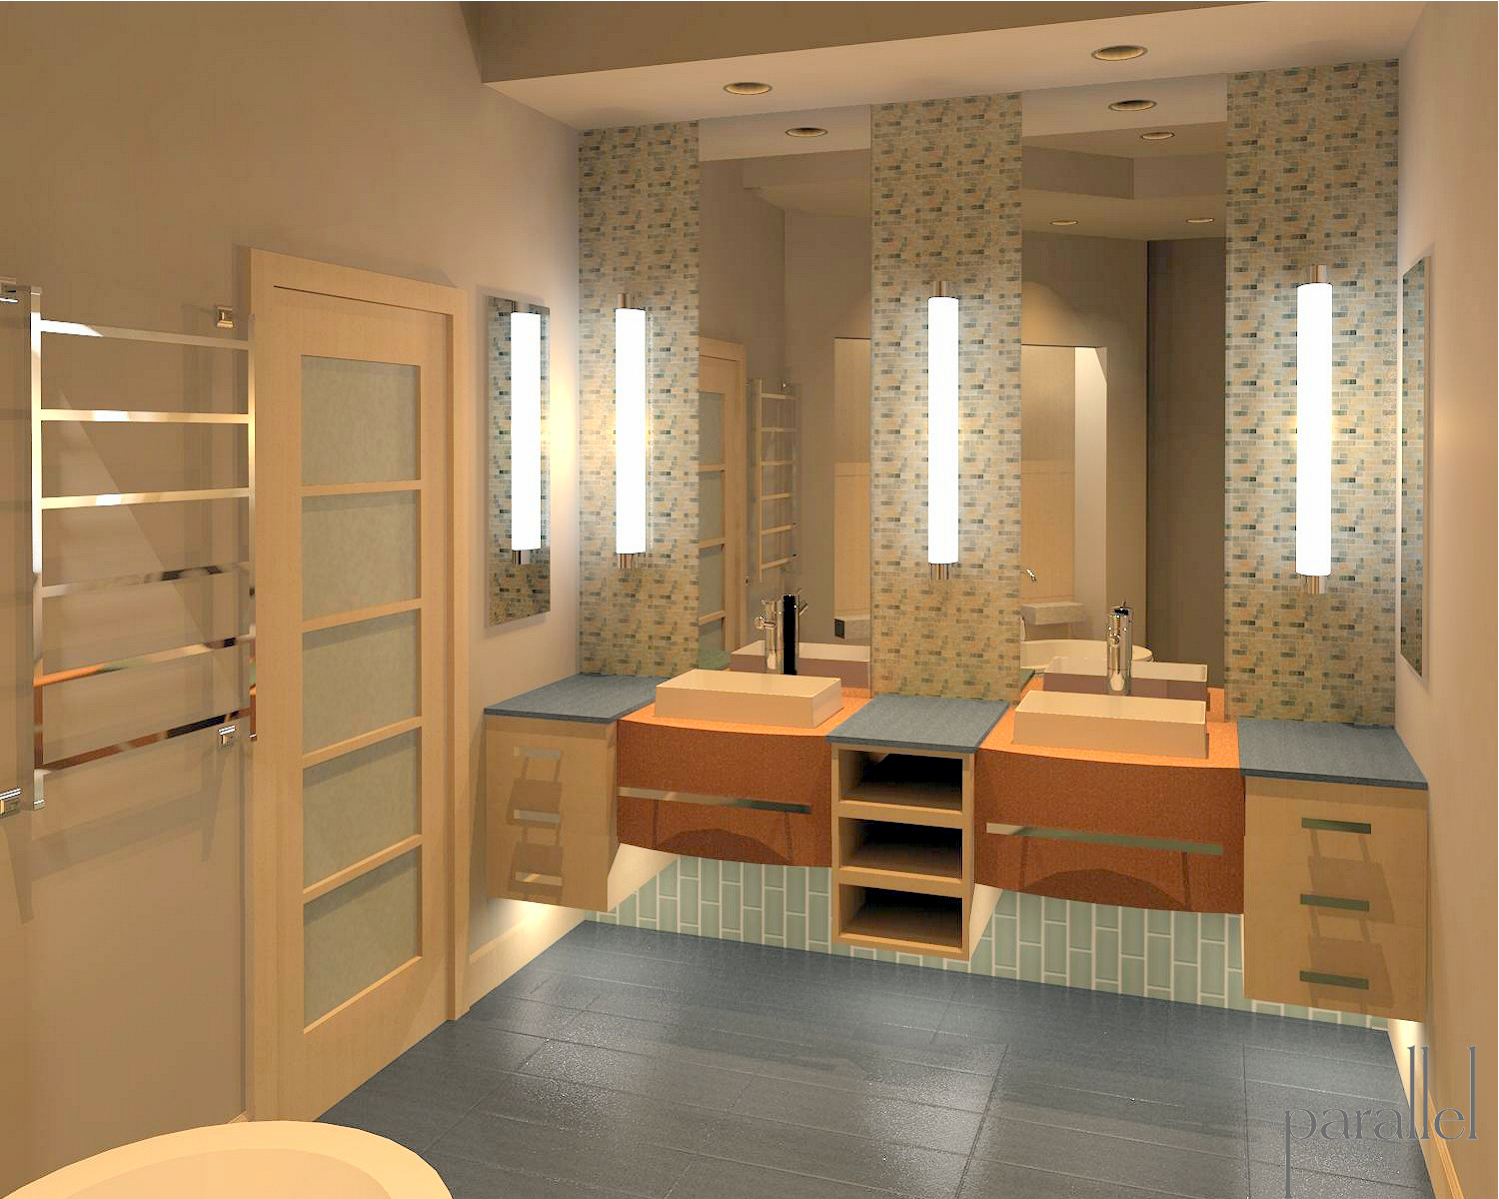 Image of: Bathroom Renovations Cost